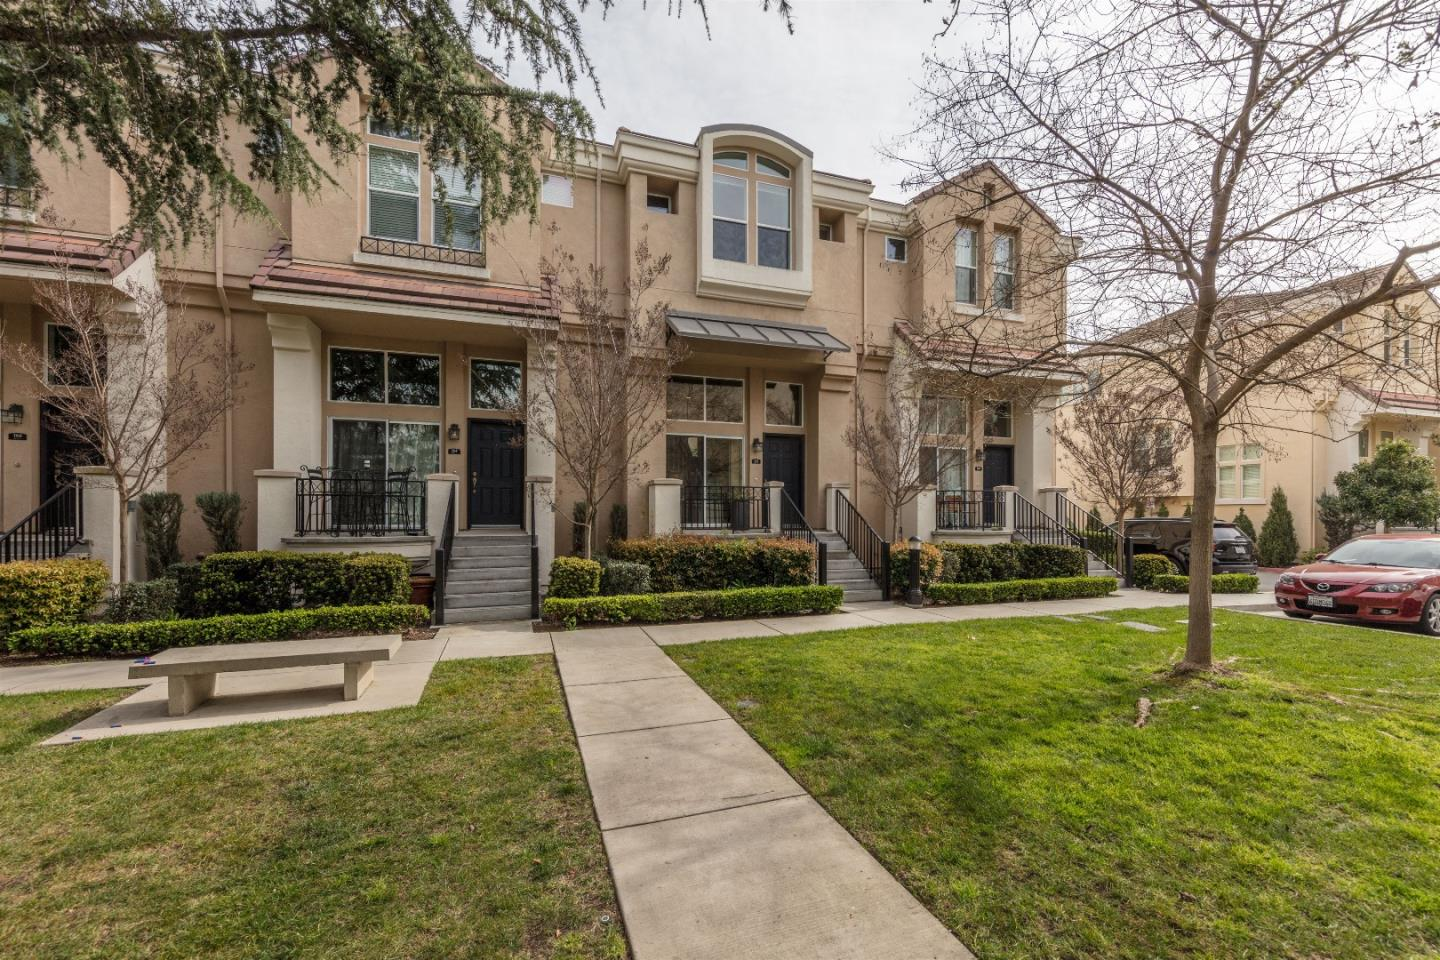 162 Oberg Ct, Mountain View, CA 94043